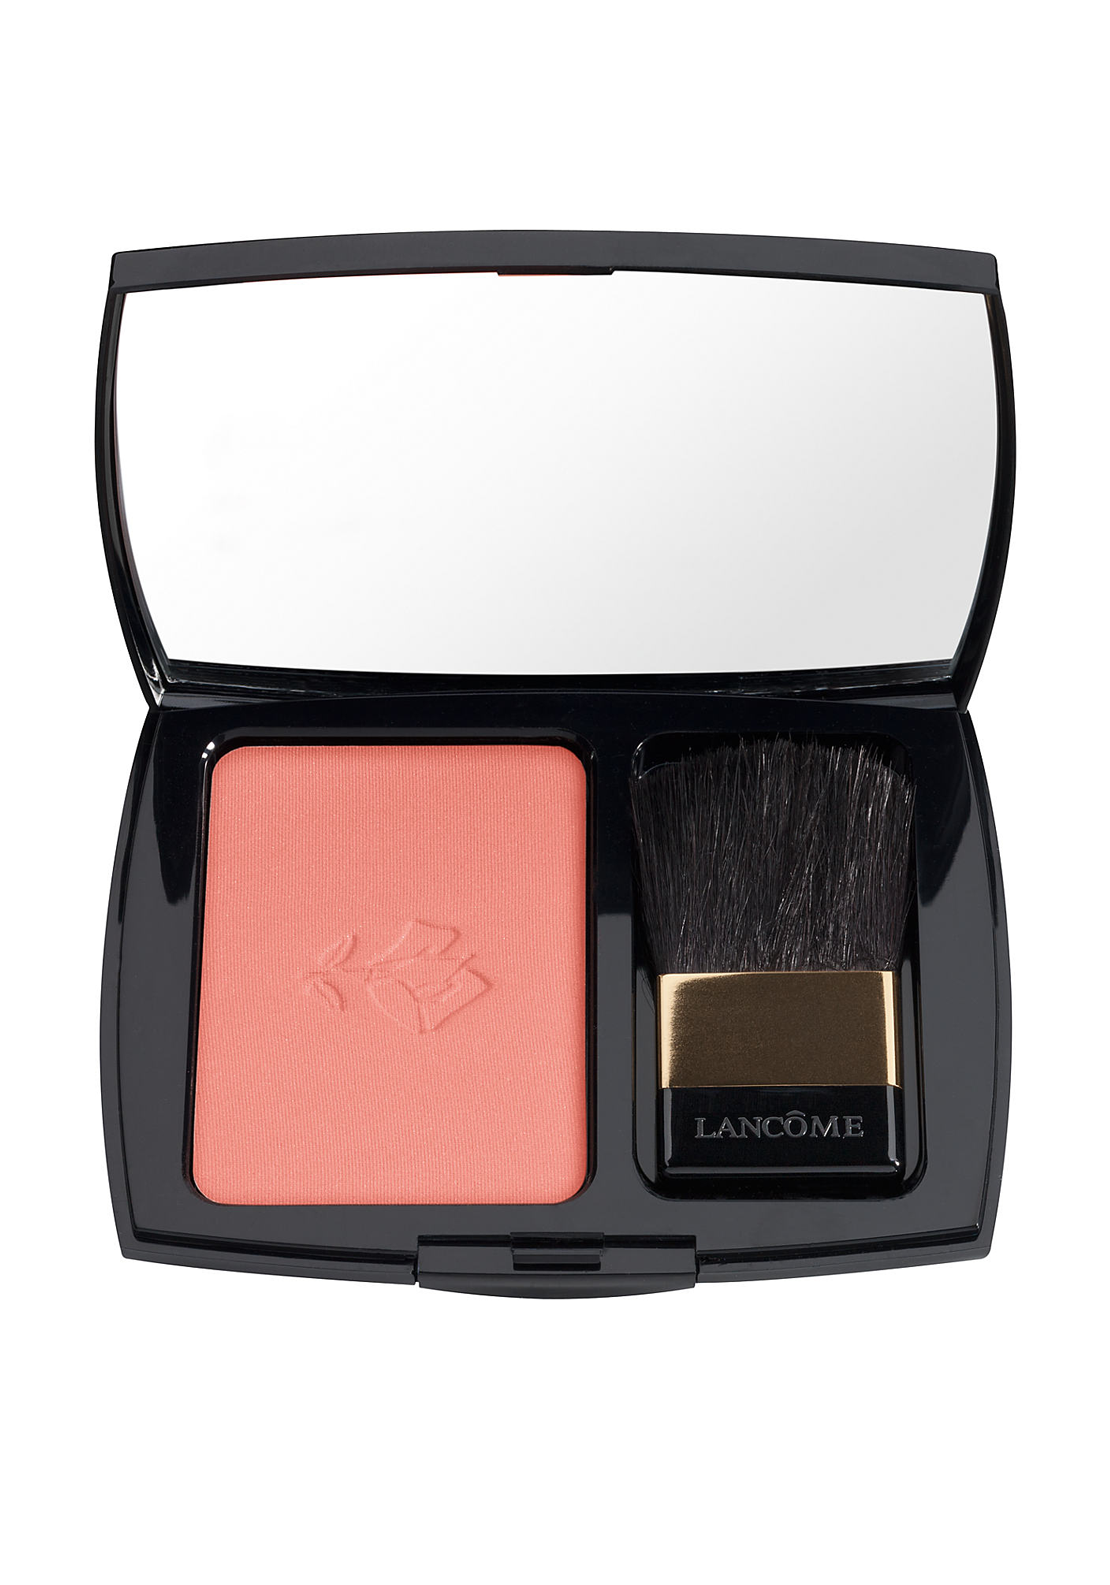 Lancome Blush Subtil Long Lasting Powder Blusher, 03